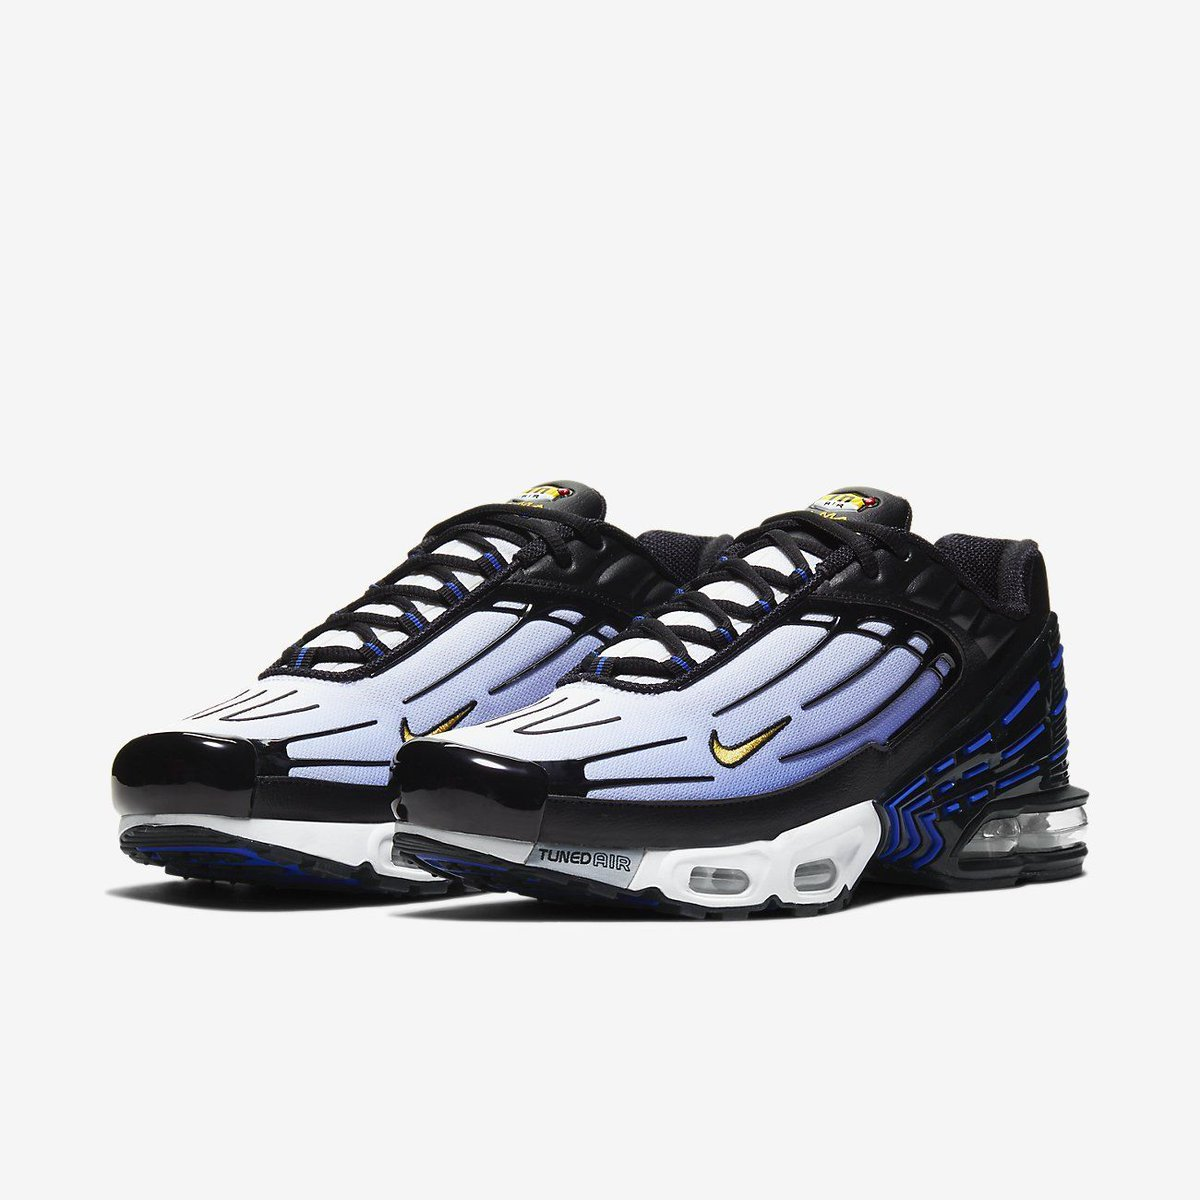 air max plus iii foot locker